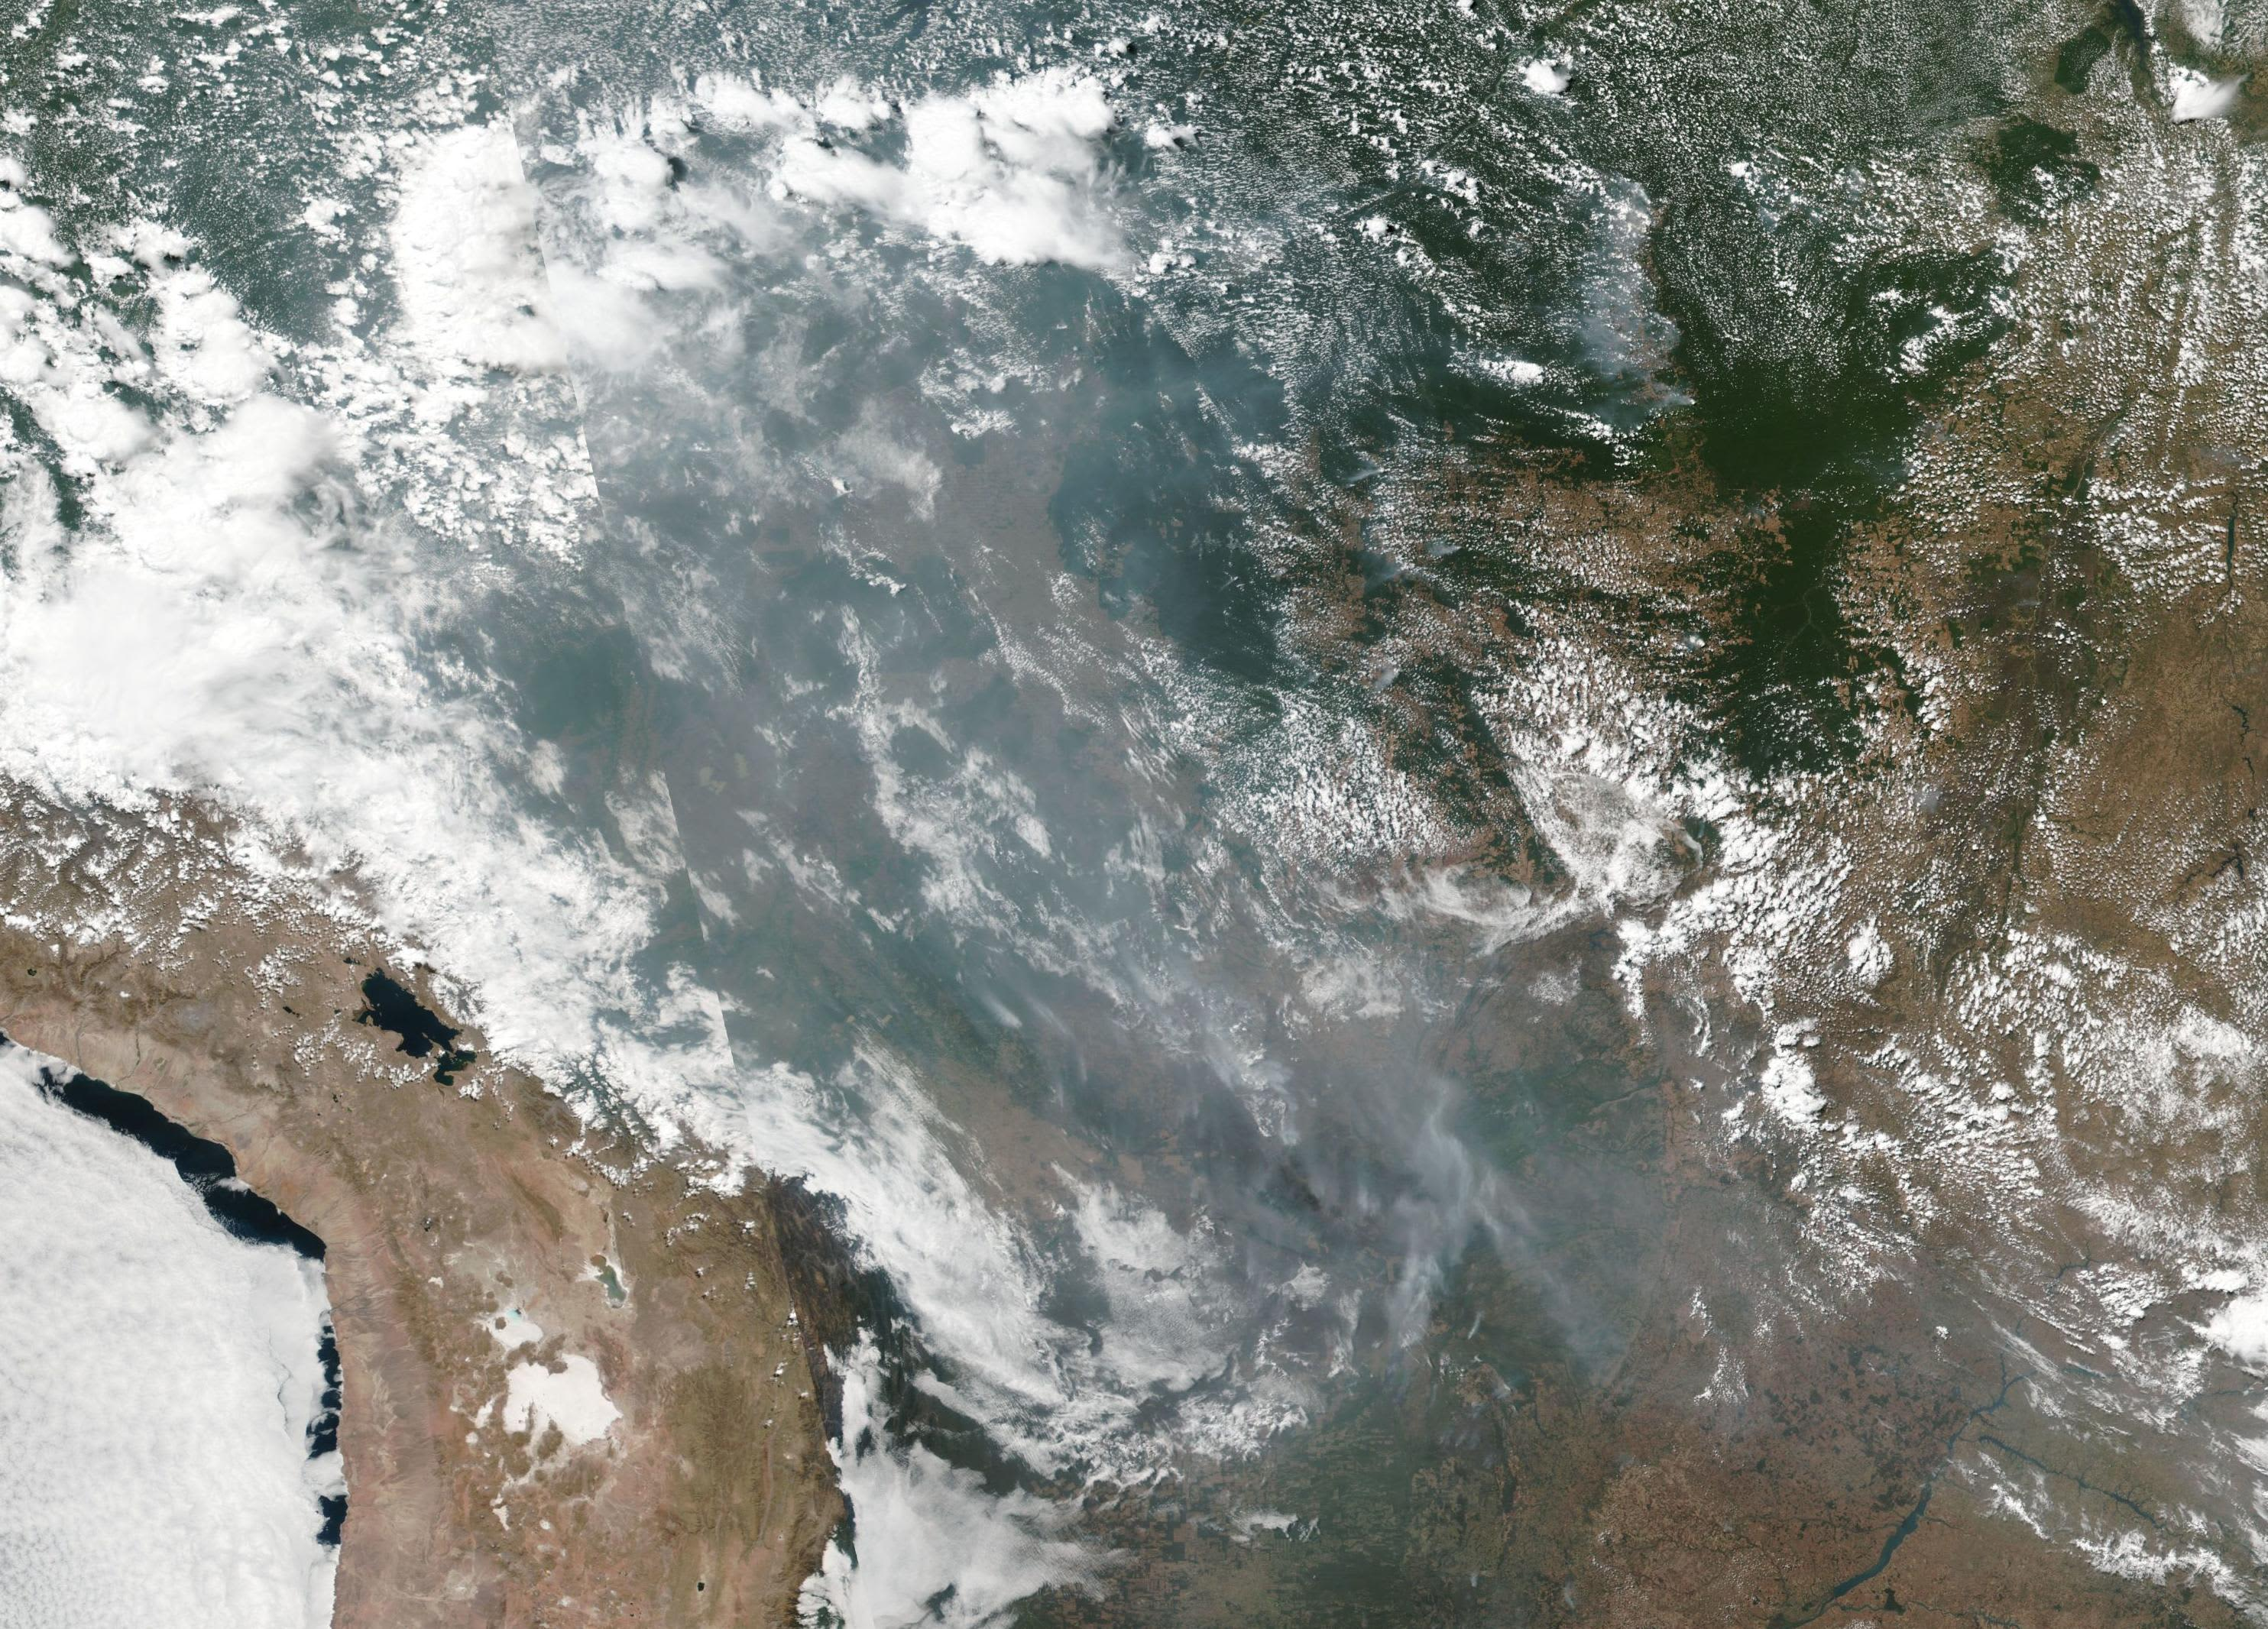 The Amazon rainforest fires in Brazil are visible from space in these NASA pictures